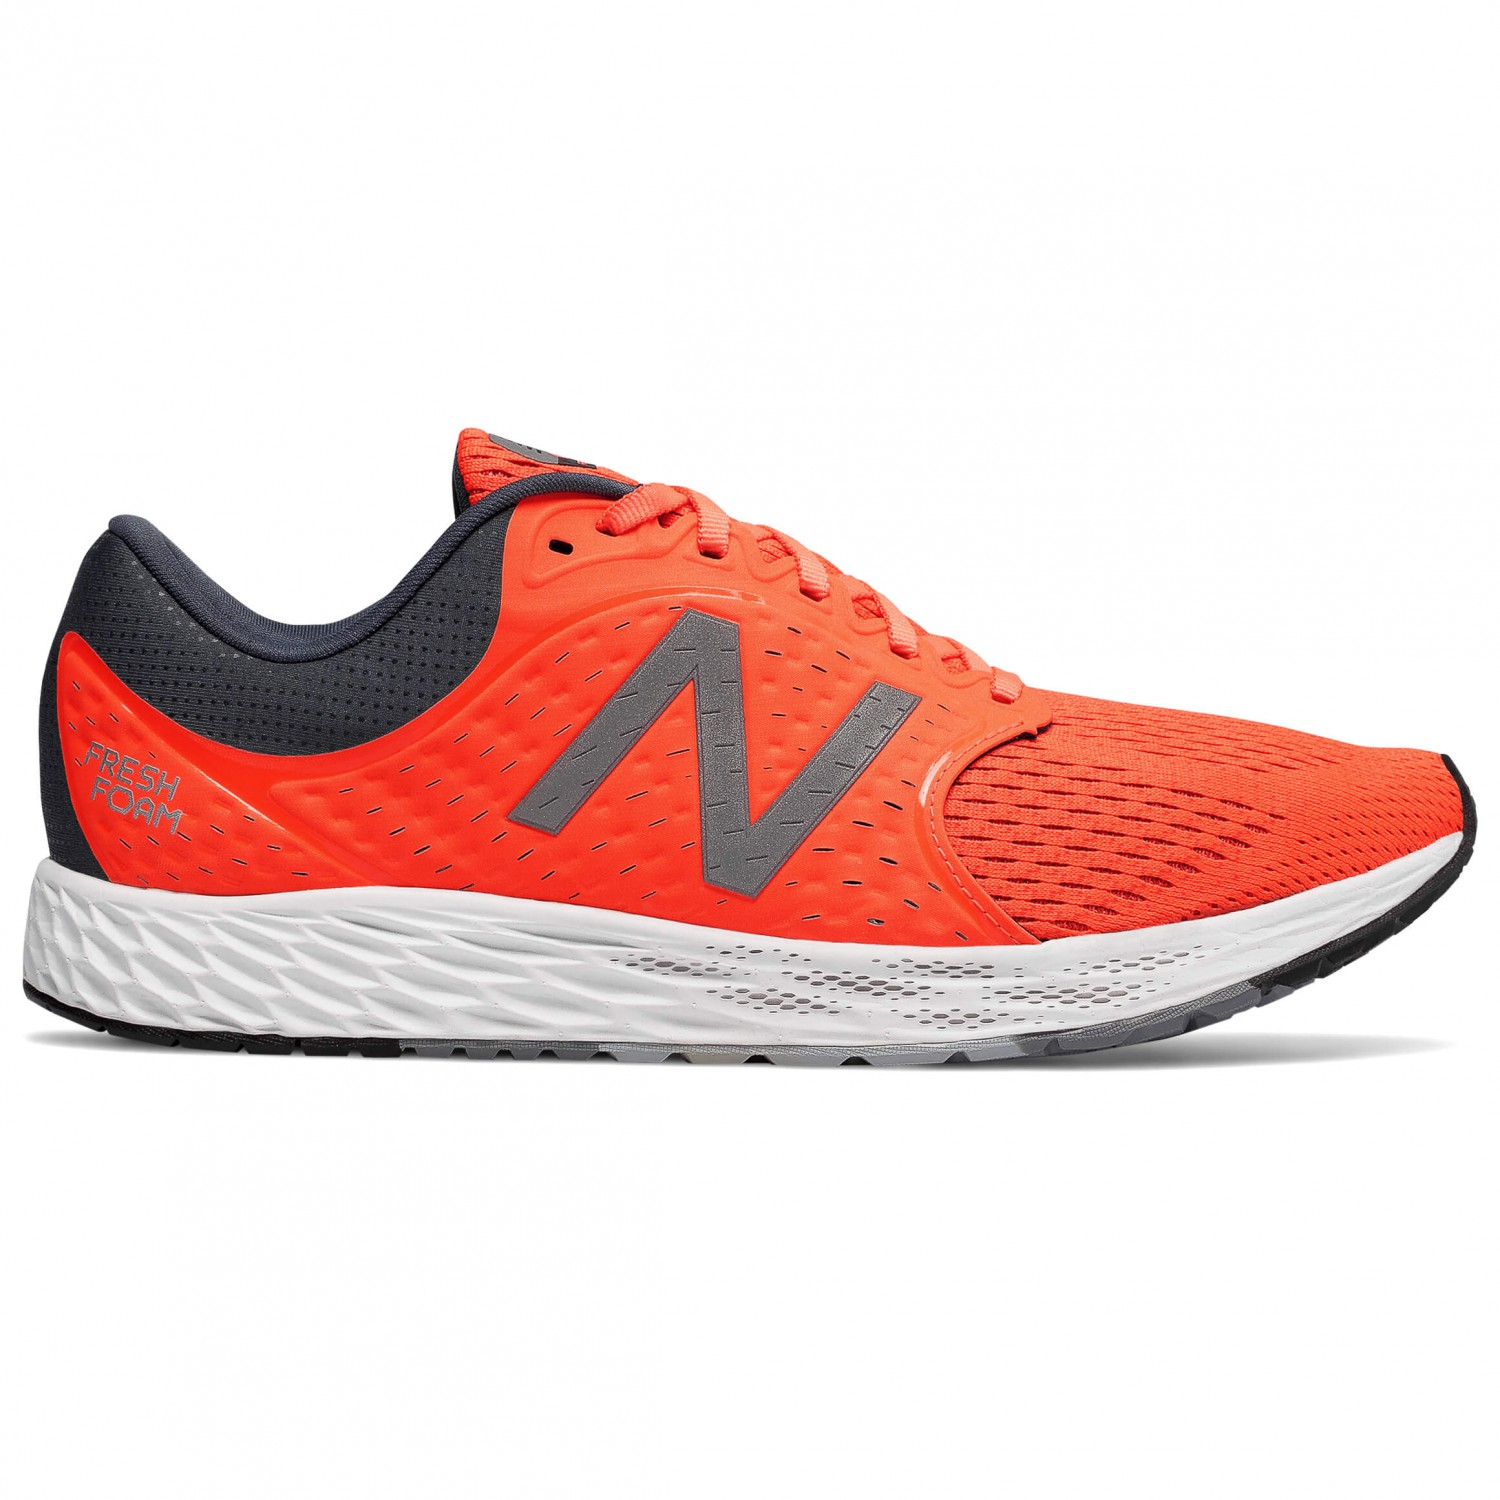 New Balance Fresh Foam Zante v4 - Running shoes Men's | Buy ...